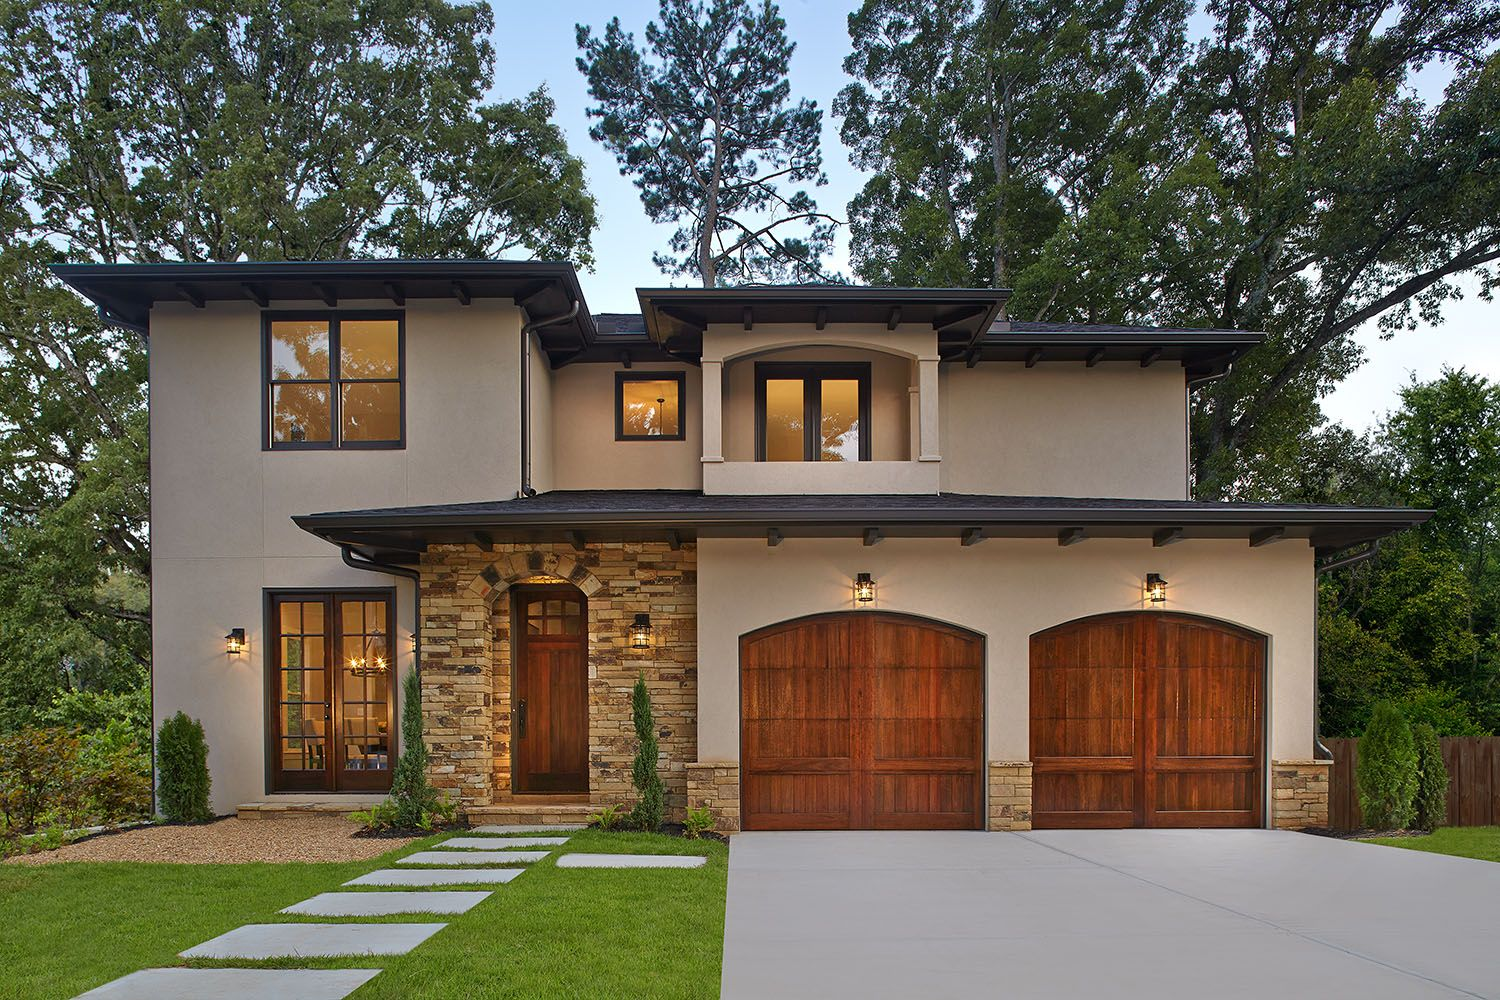 Clopay Reserve Collection Wood Carriage House Style Garage Doors Add Warmth And Character To This Mediterranean Homes Exterior Mediterranean Homes House Styles